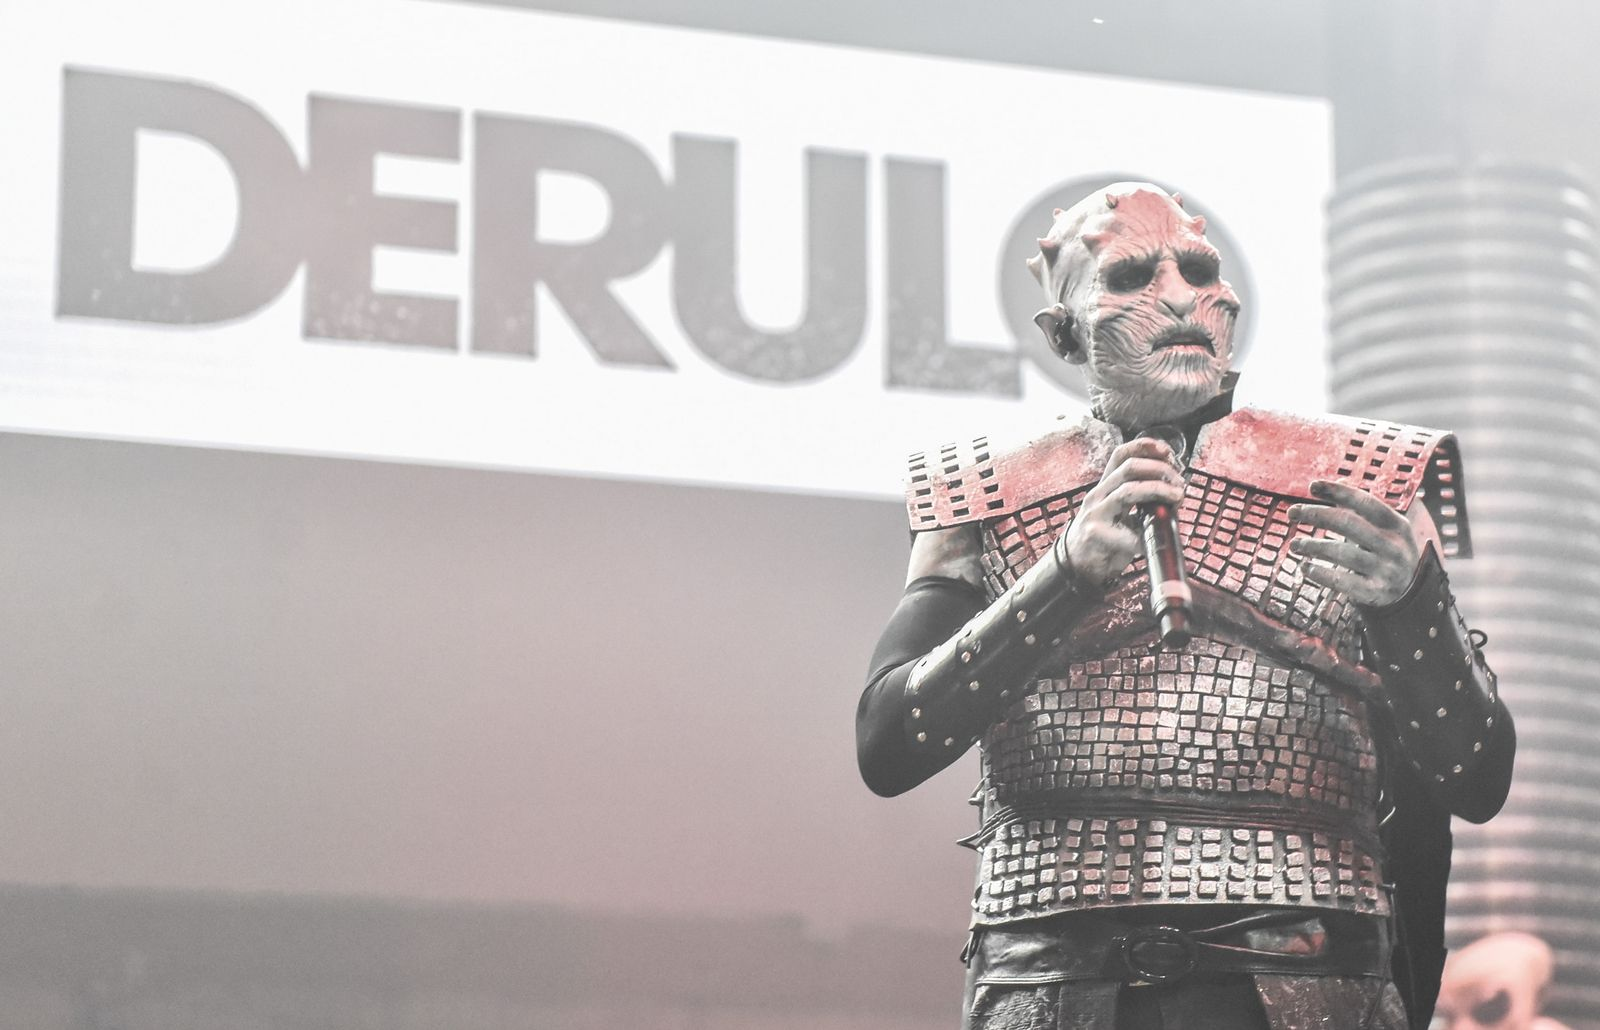 Jason derulo - as The Night King from Game of Thrones (photo cred: Esquire)